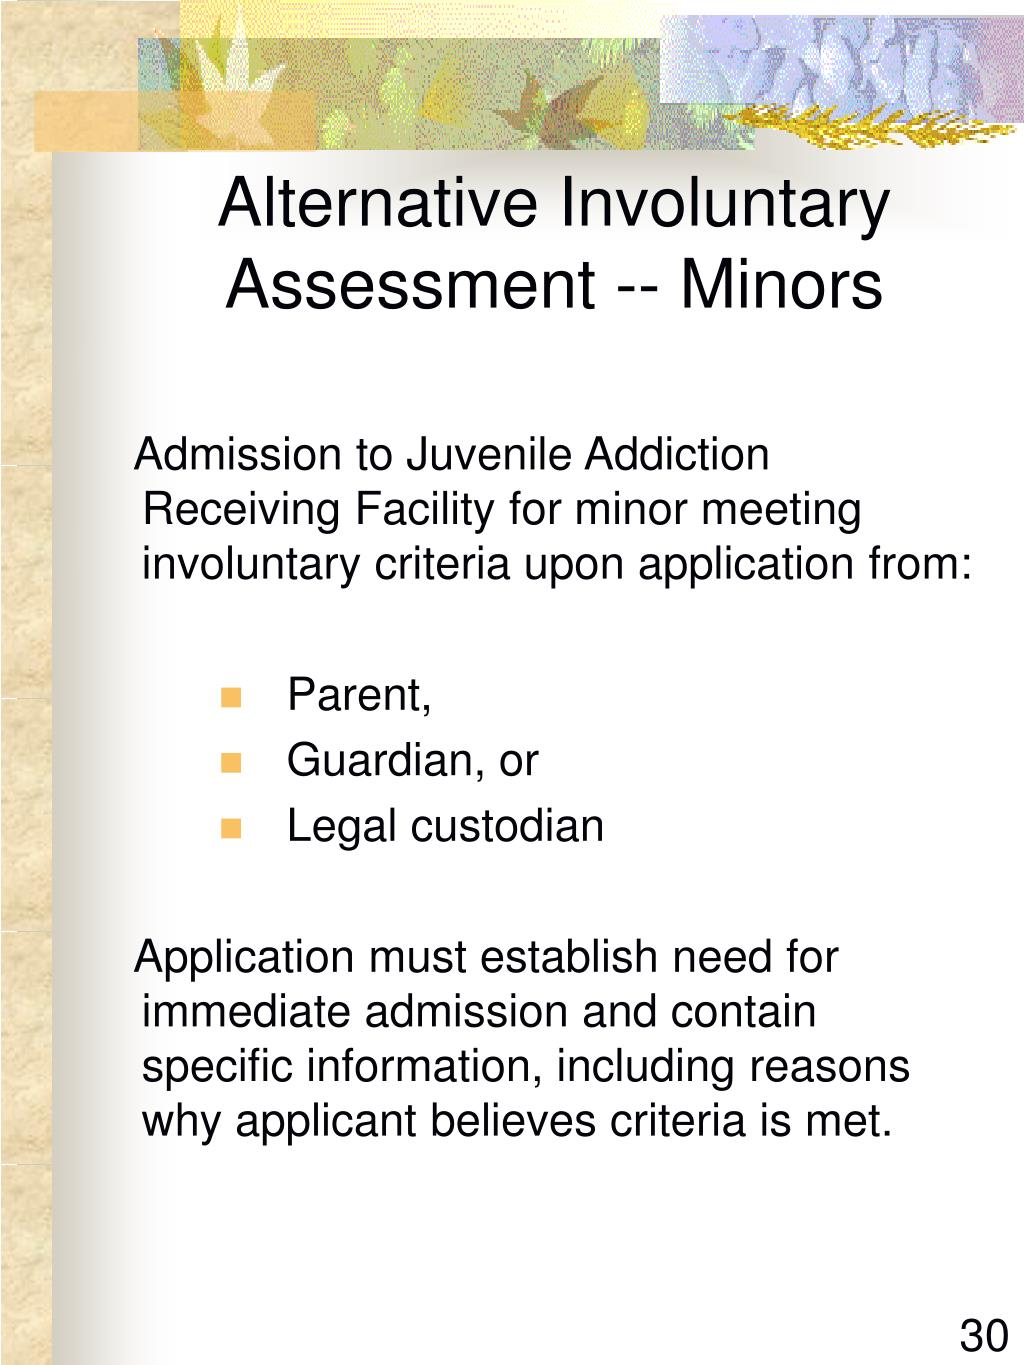 Alternative Involuntary